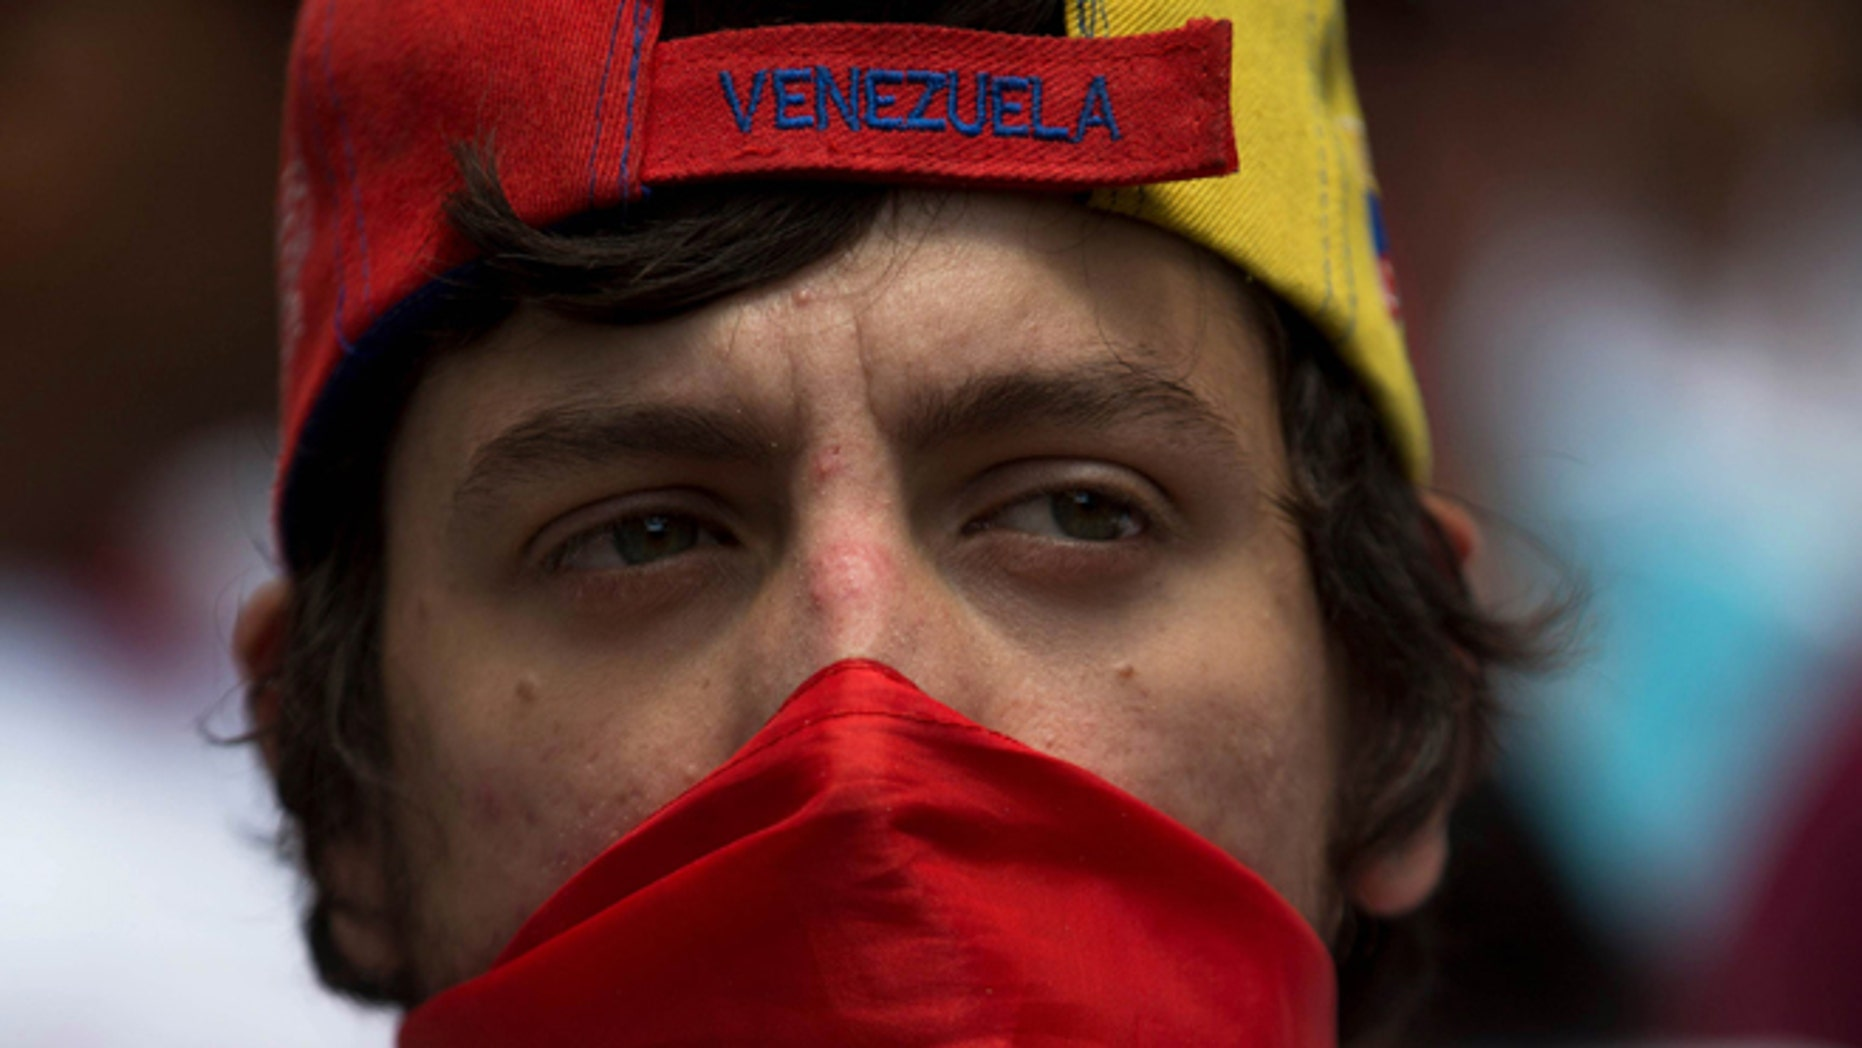 An opposition member covers his face with a Venezuelan flag during a protest in Caracas, Venezuela, Saturday, Feb. 28, 2015. Marchers are taking to the streets of Caracas in dueling protests, with one group calling attention to a crackdown on opponents of the government and another showing support for the embattled socialist administration.(AP Photo/Fernando Llano)